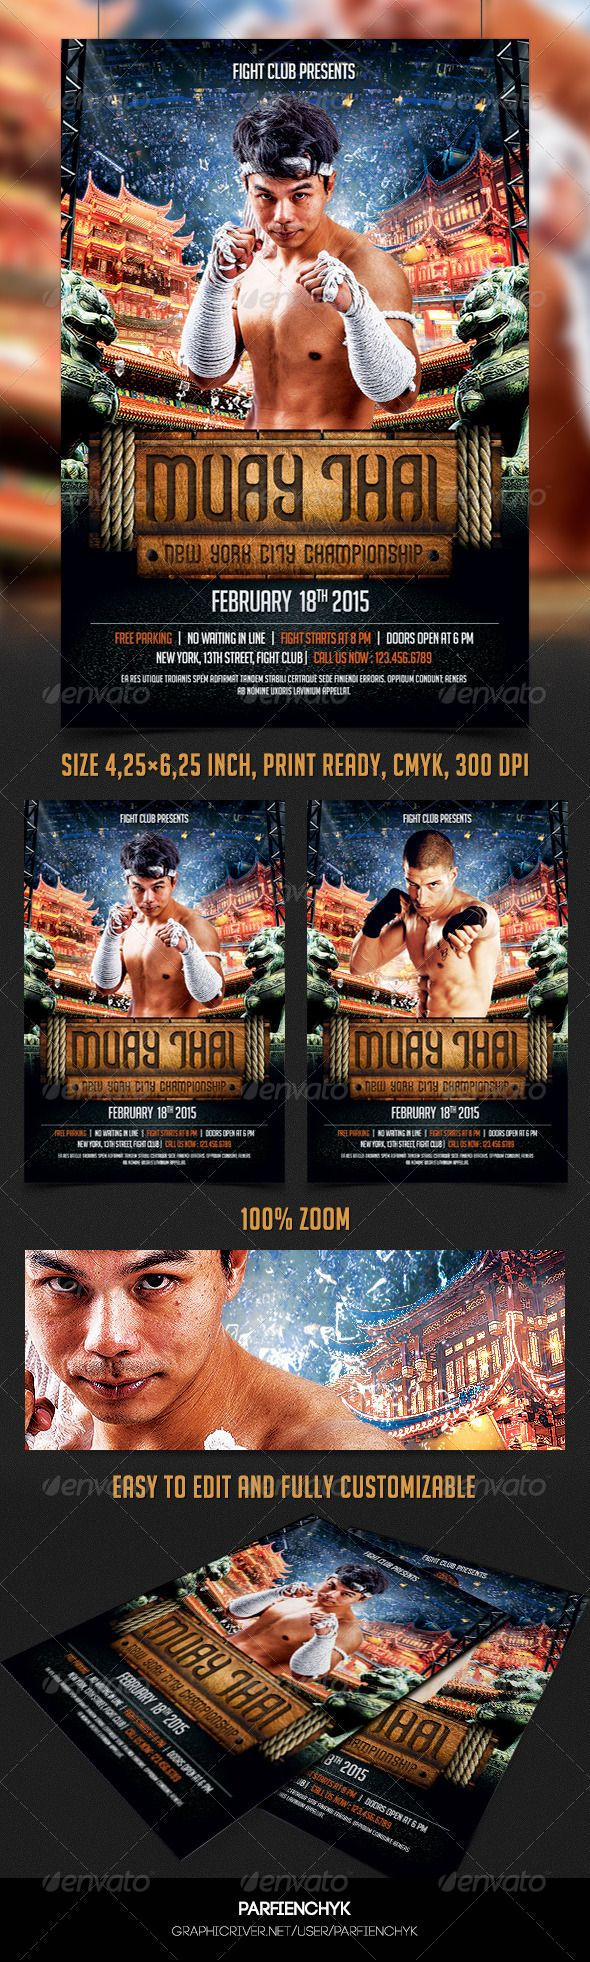 Muay Thai Flyer Template  Flyer Template Template And Event Flyers